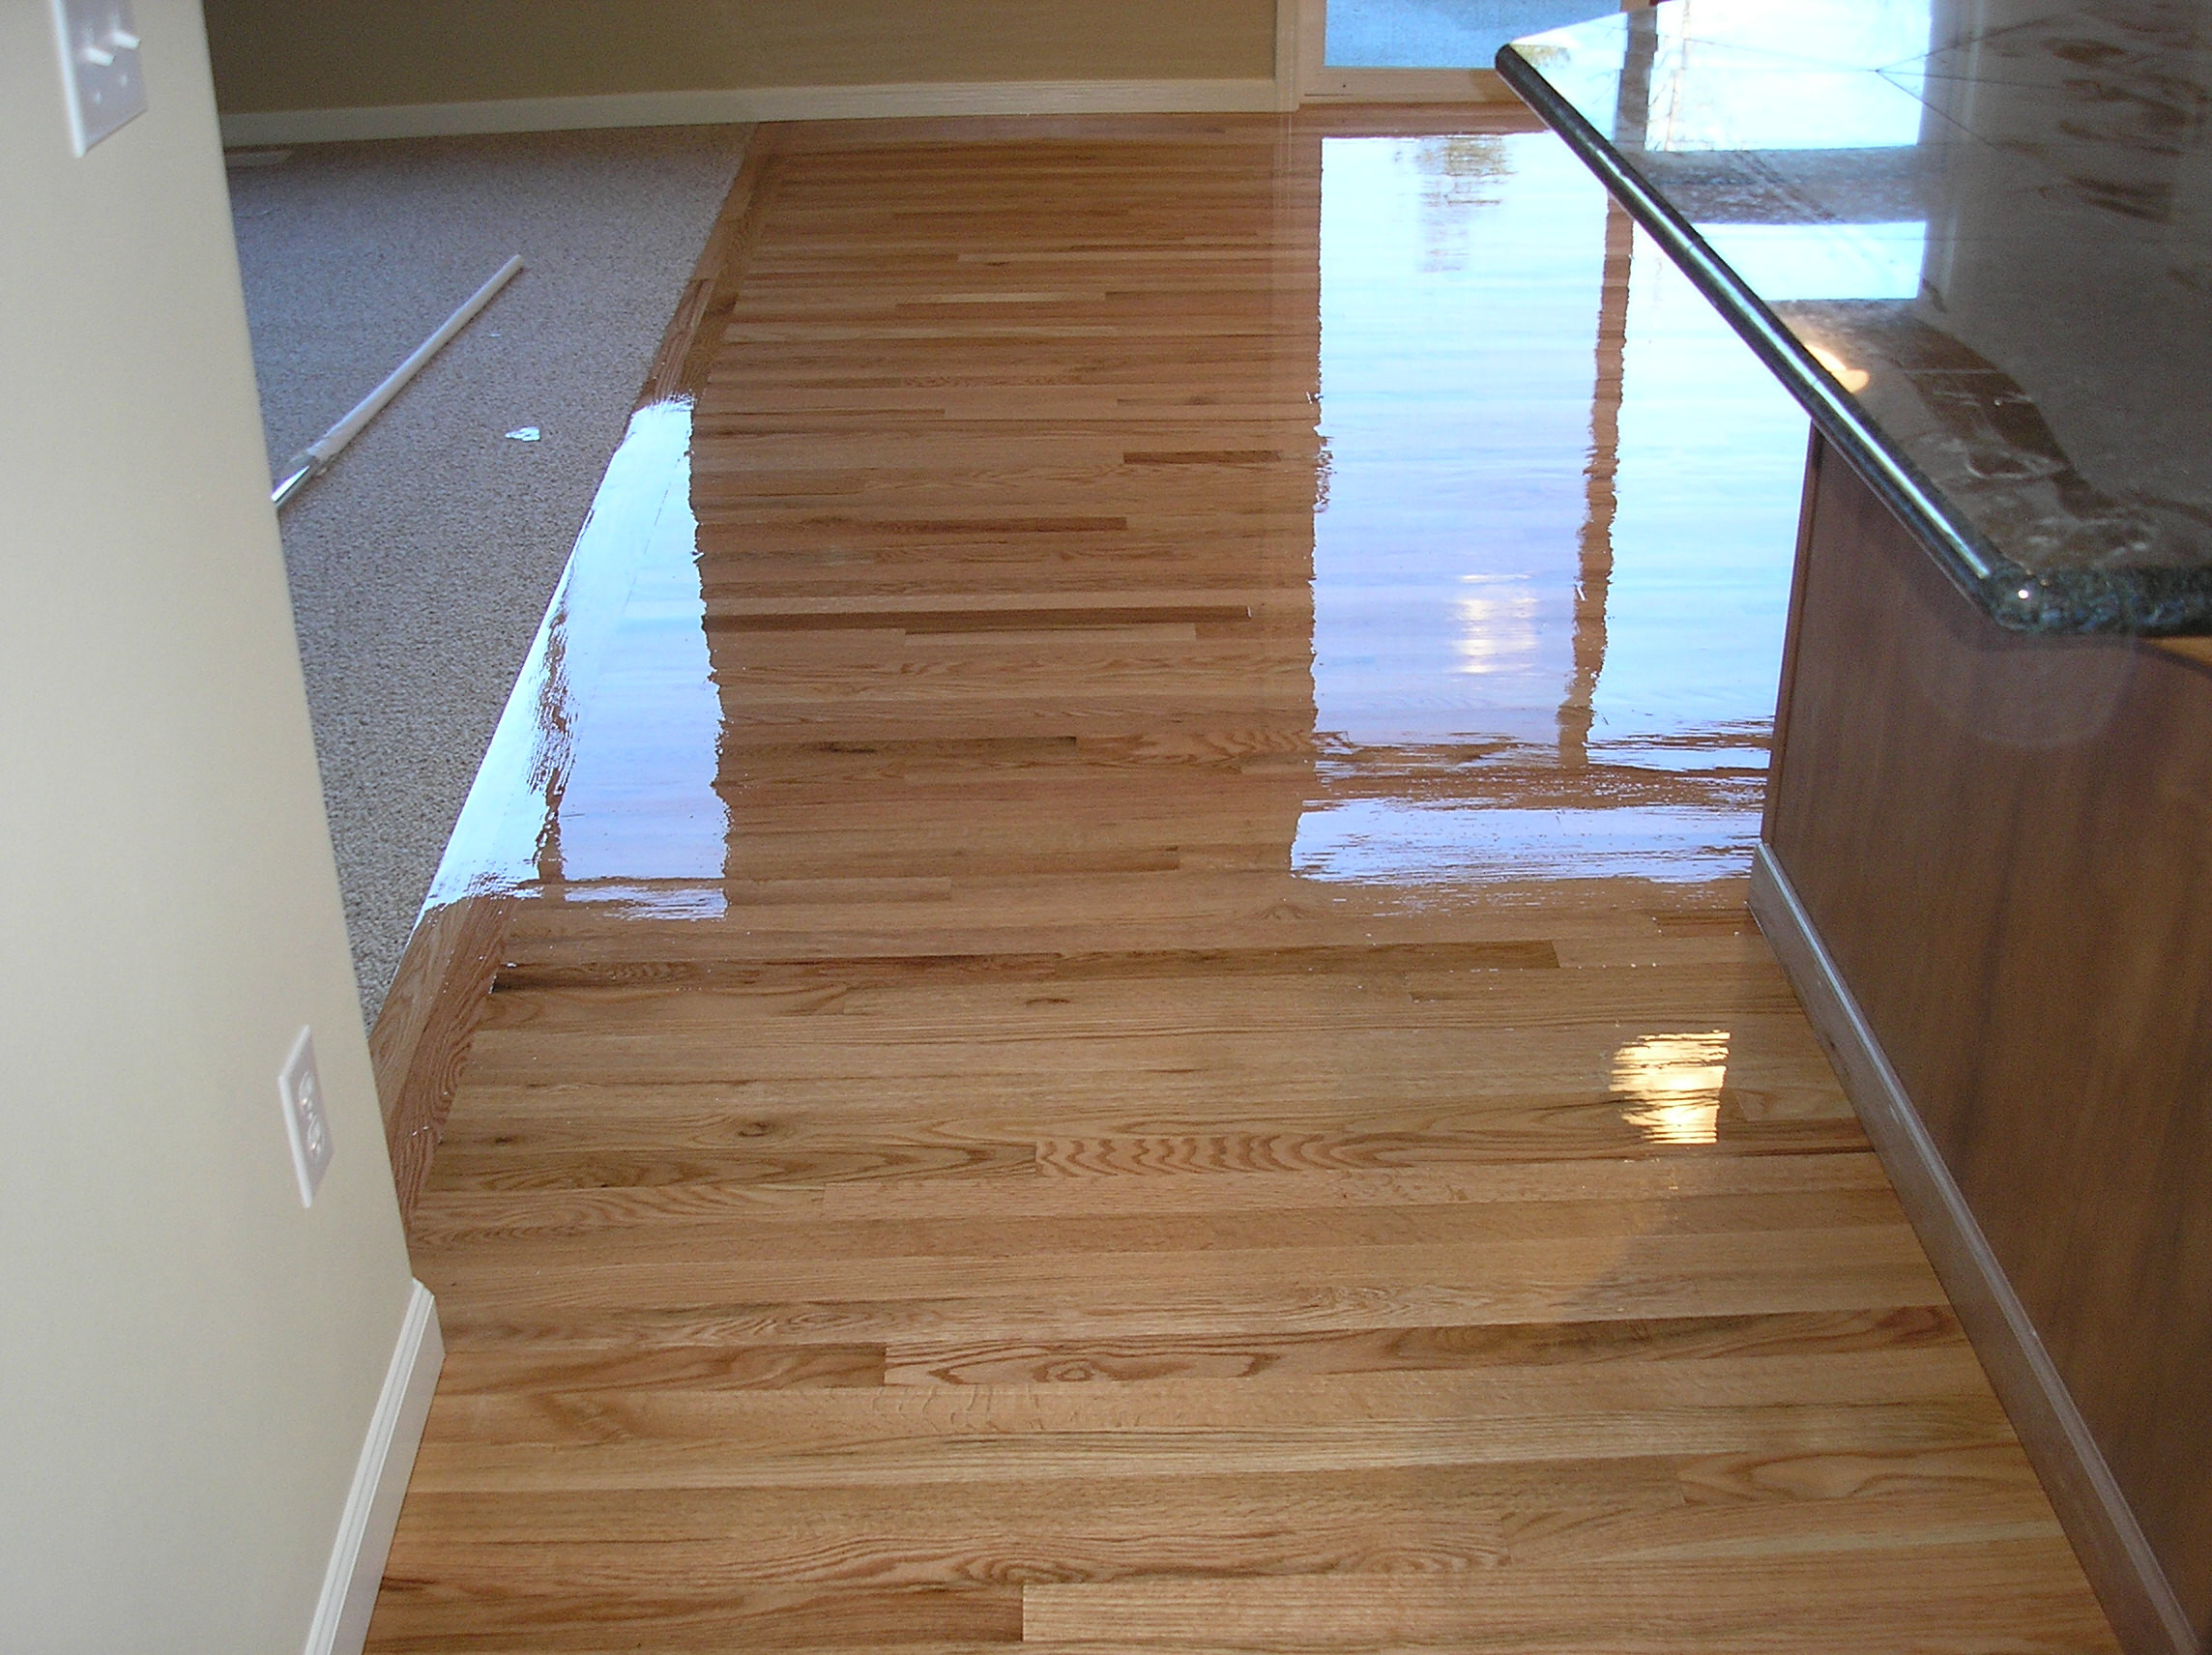 average cost to refinish hardwood floors yourself of how much does it cost to sand stain and refinish hardwood floors with regard to cost to sand and refinish hardwood floors pleasurable design ideas